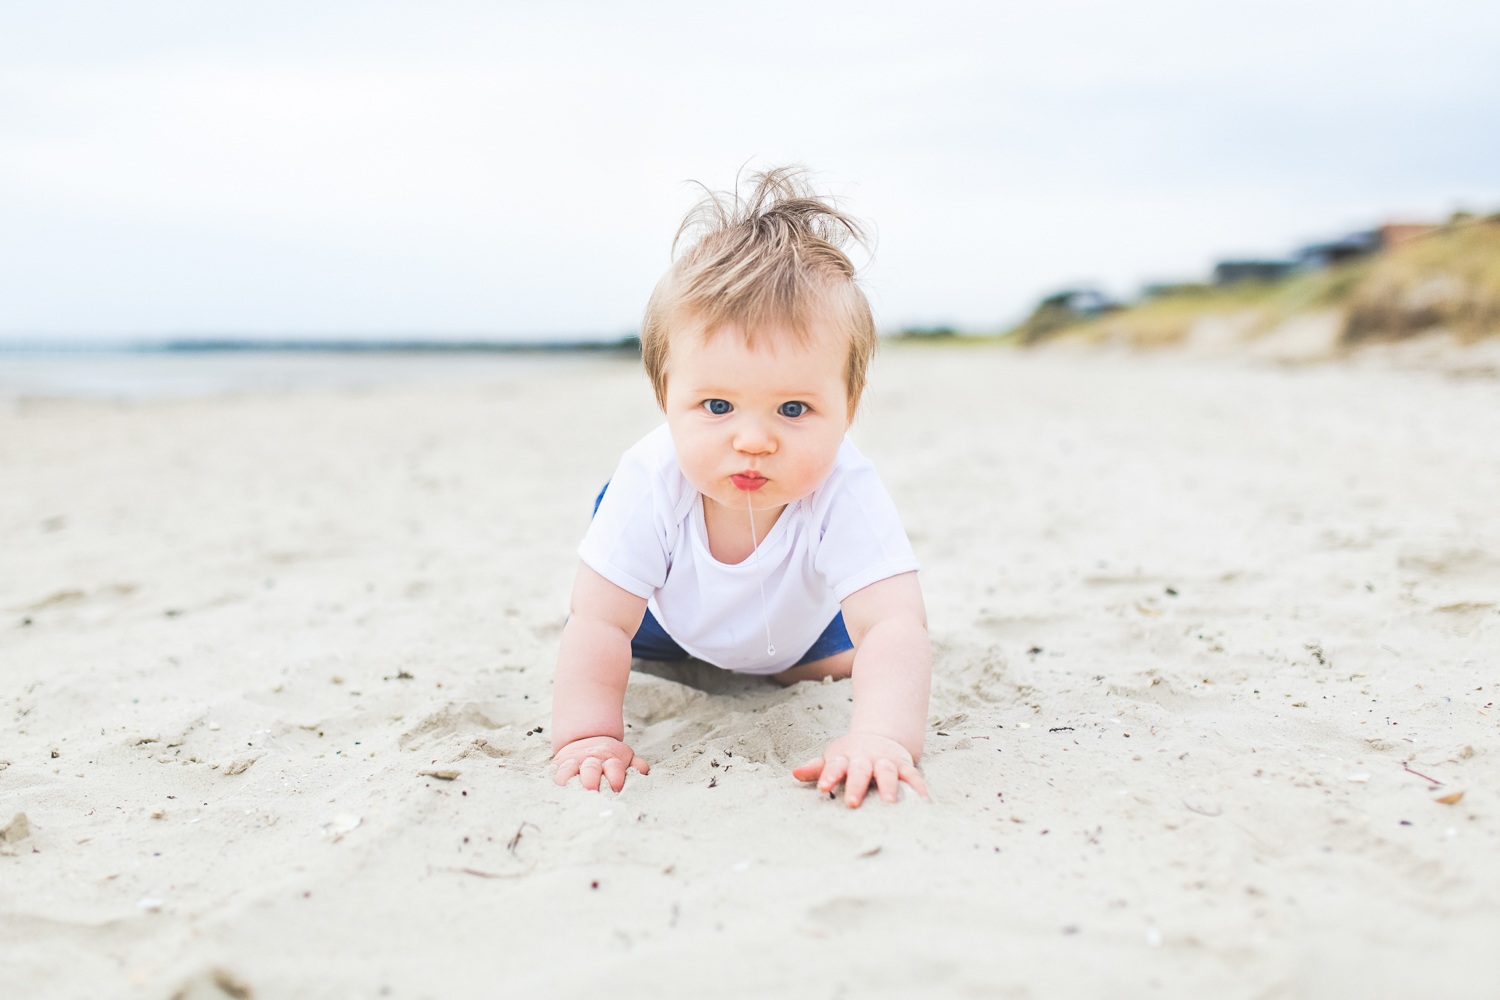 Melbourne baby photography beach session | Laura Coutts Photography